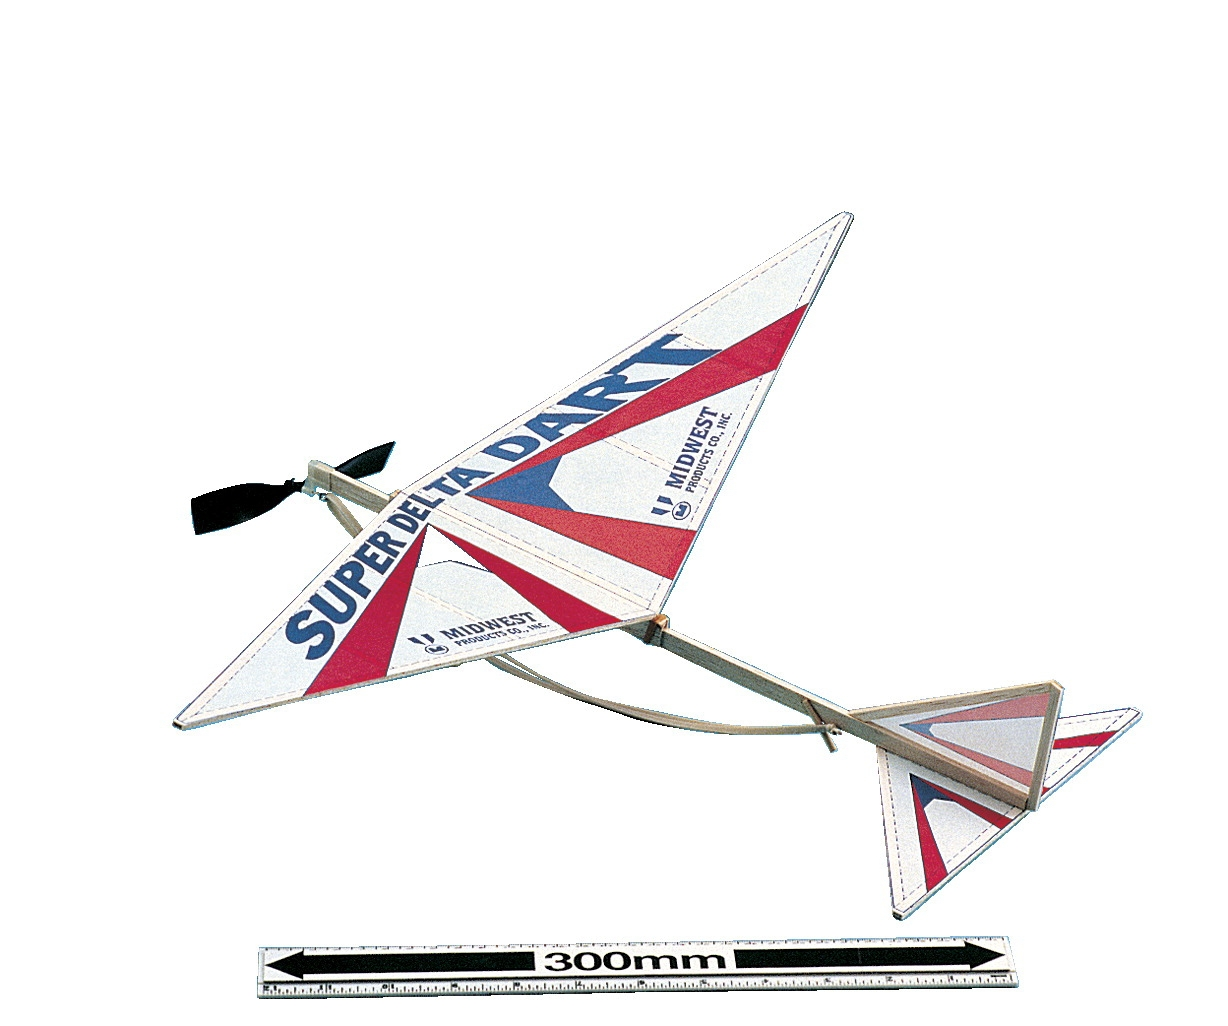 Frey Scientific Super Delta Dart Kit - 592590 - Instructional Materials Resources Science Activities Equipment Physical Science Projects Books 592590